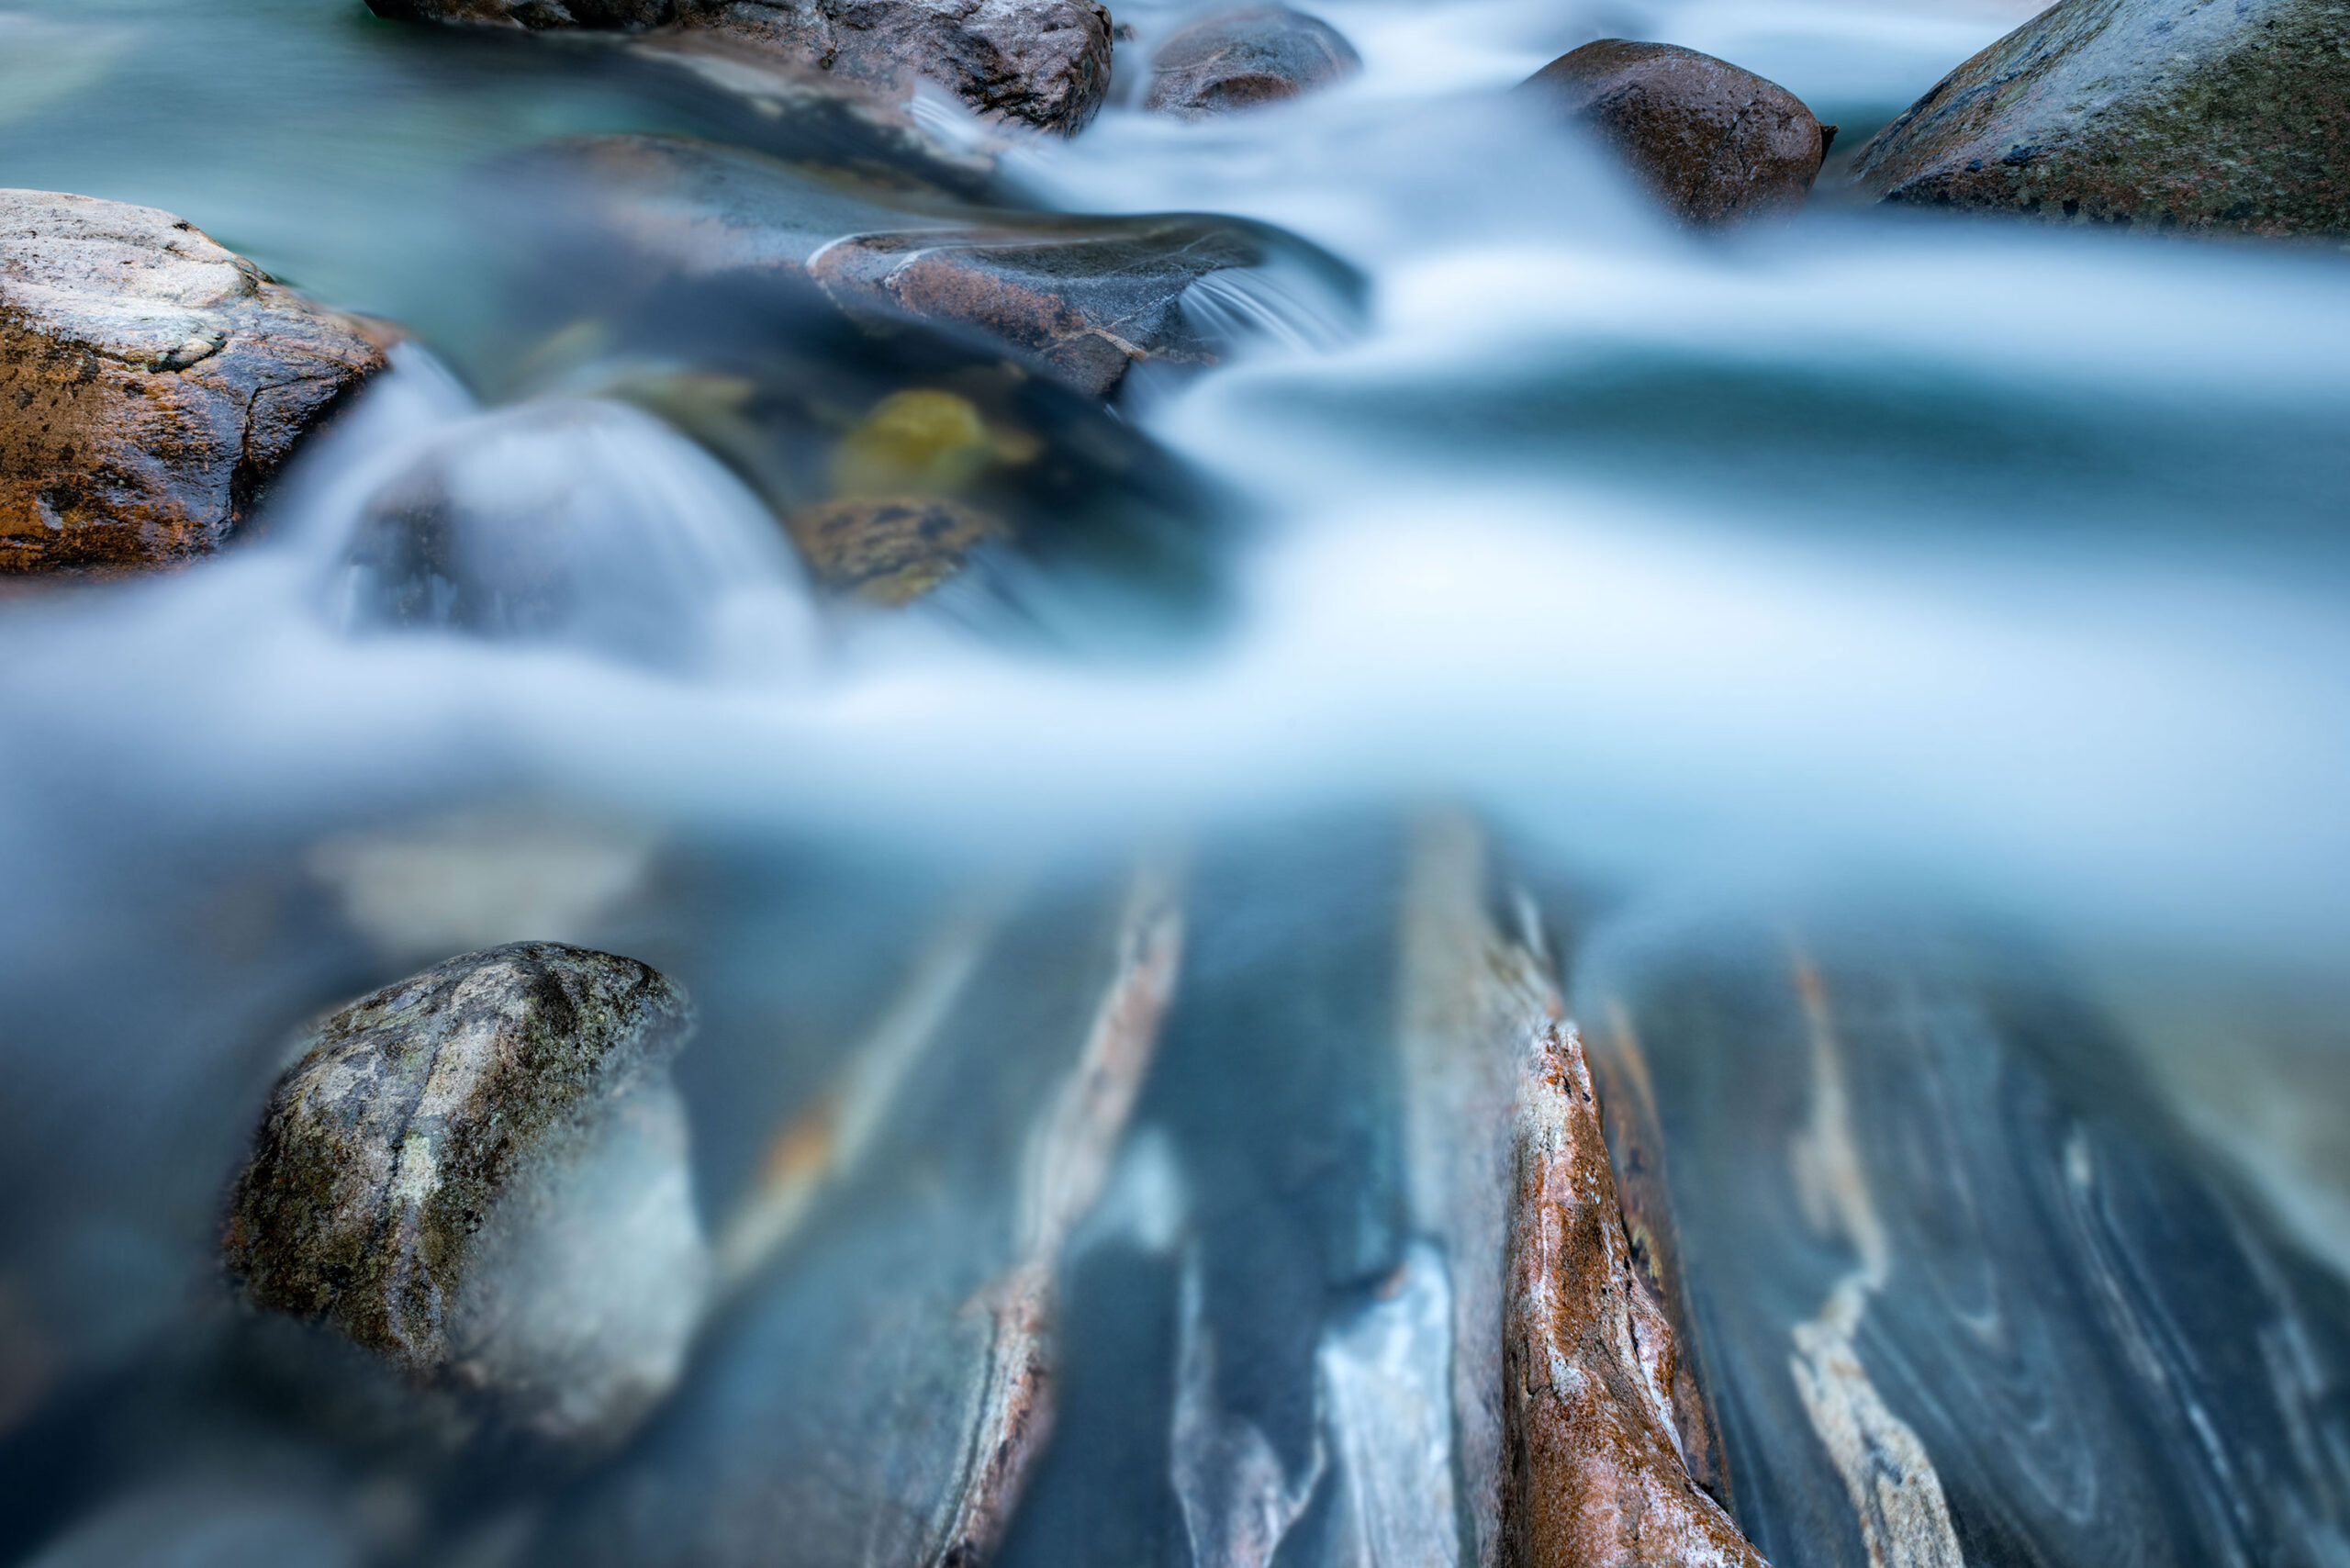 Close up fine art and long exposure photography of the Verzasca River in Ticino, Switzerland. Image by Jennifer Esseiva.